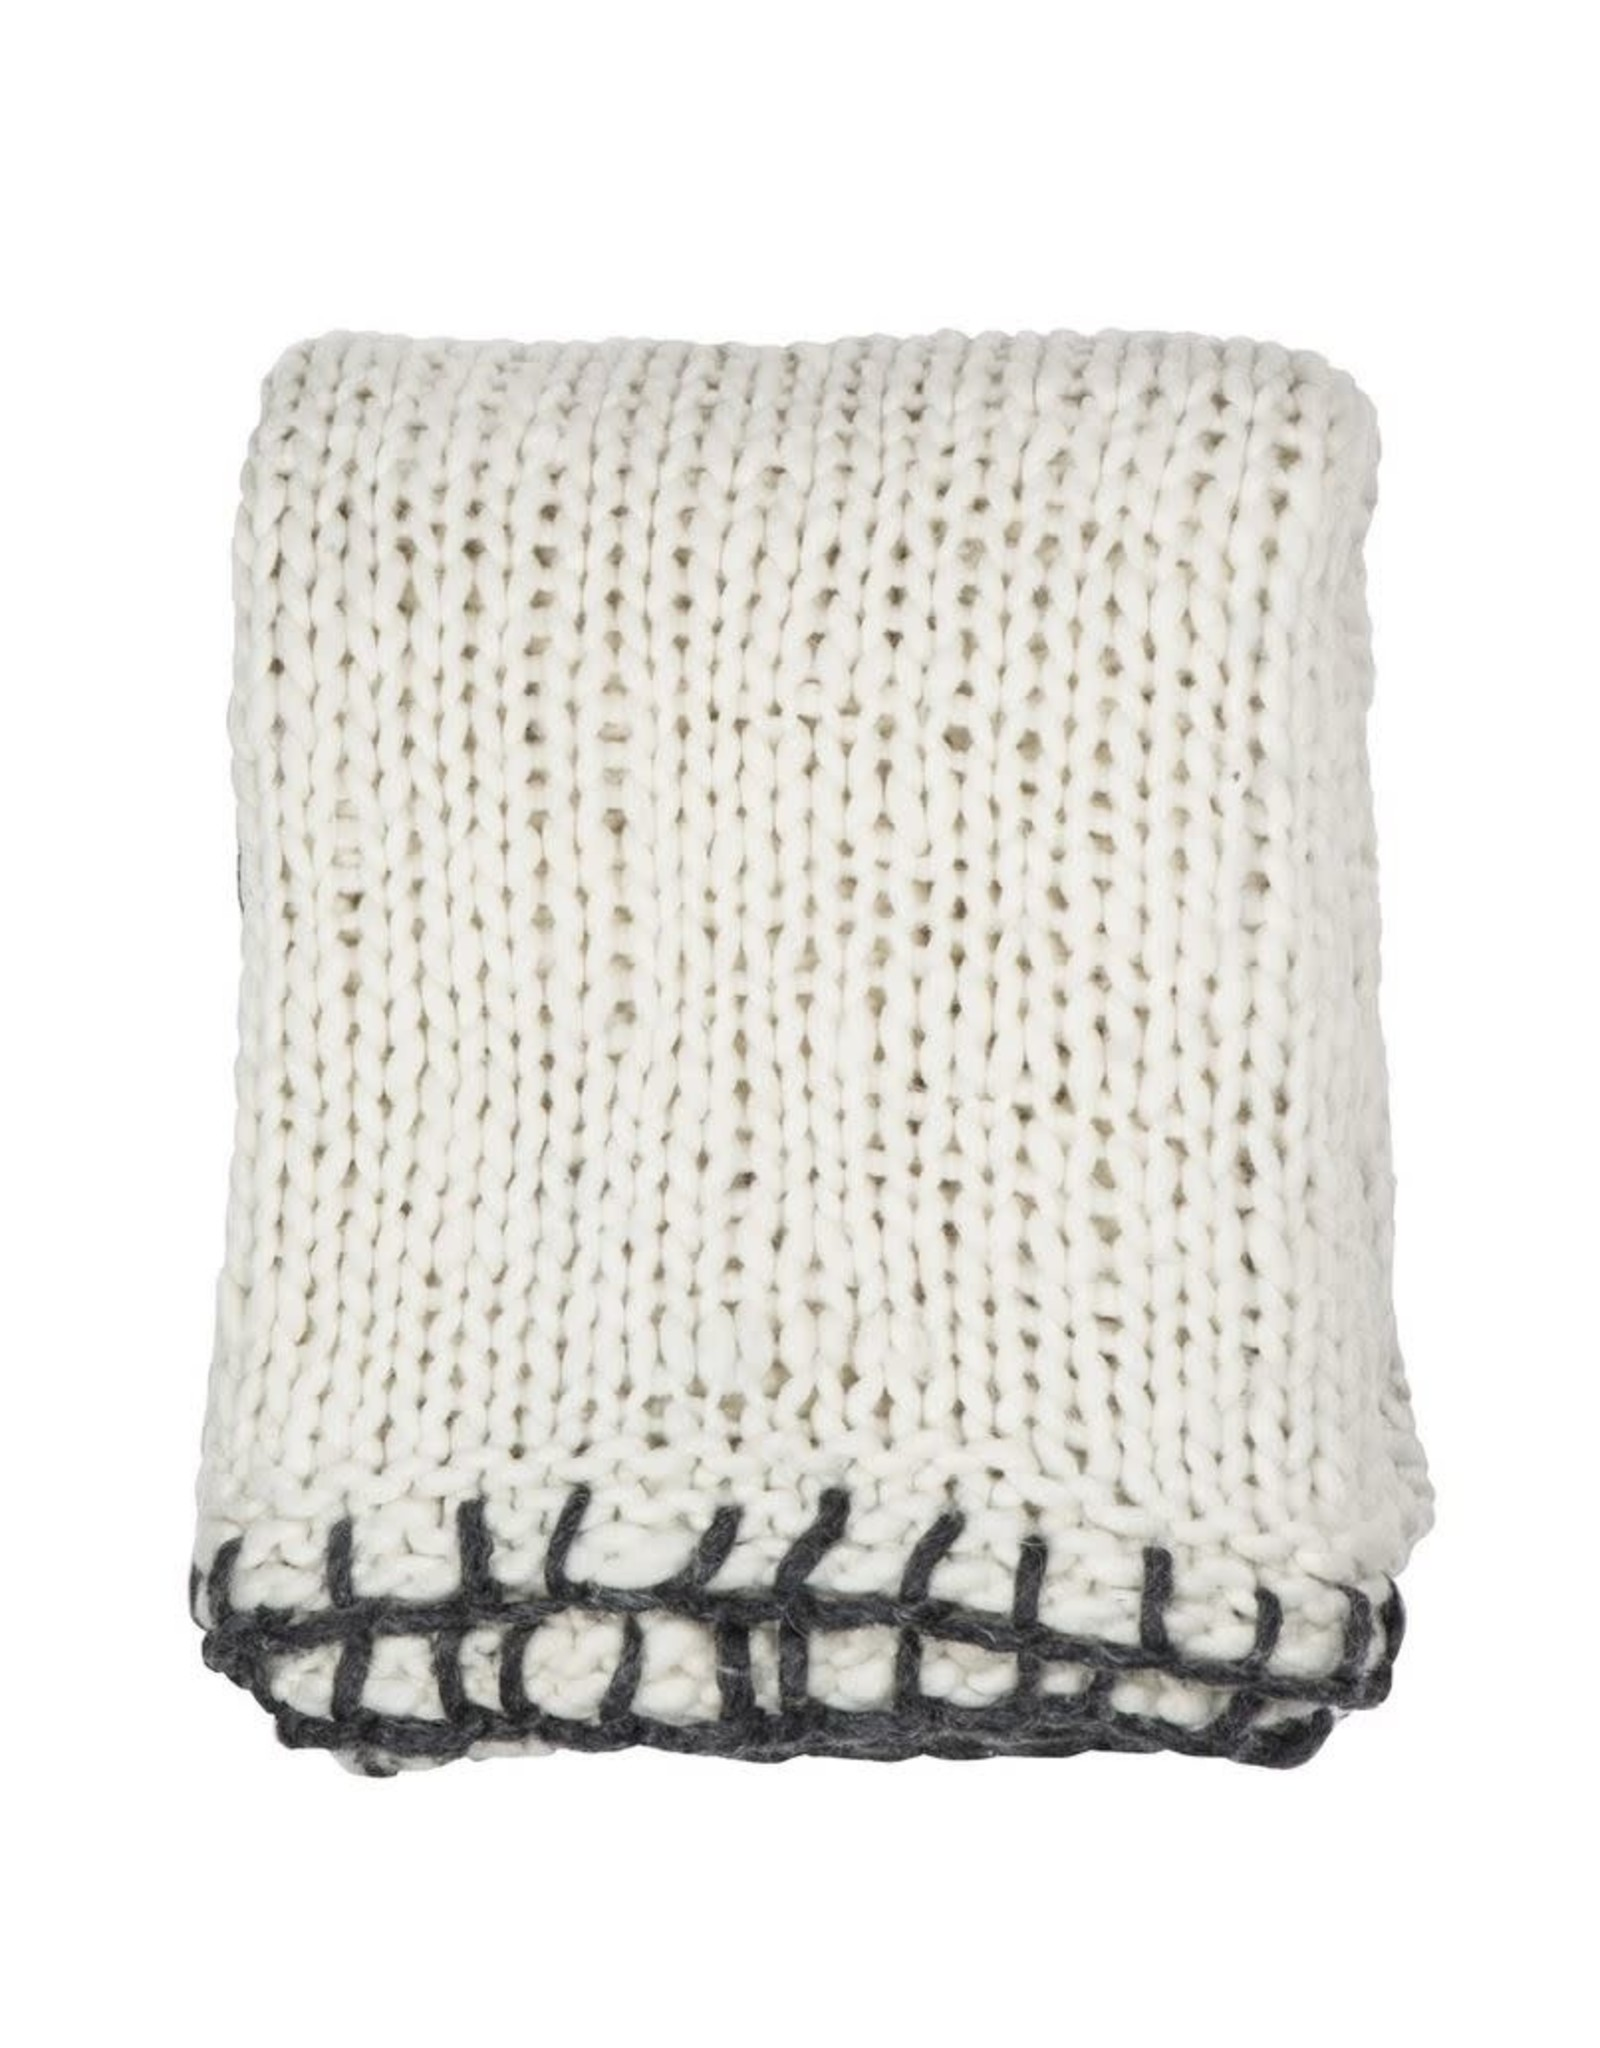 Amalfi Clifford Throw Knitted with Blanket Stitch